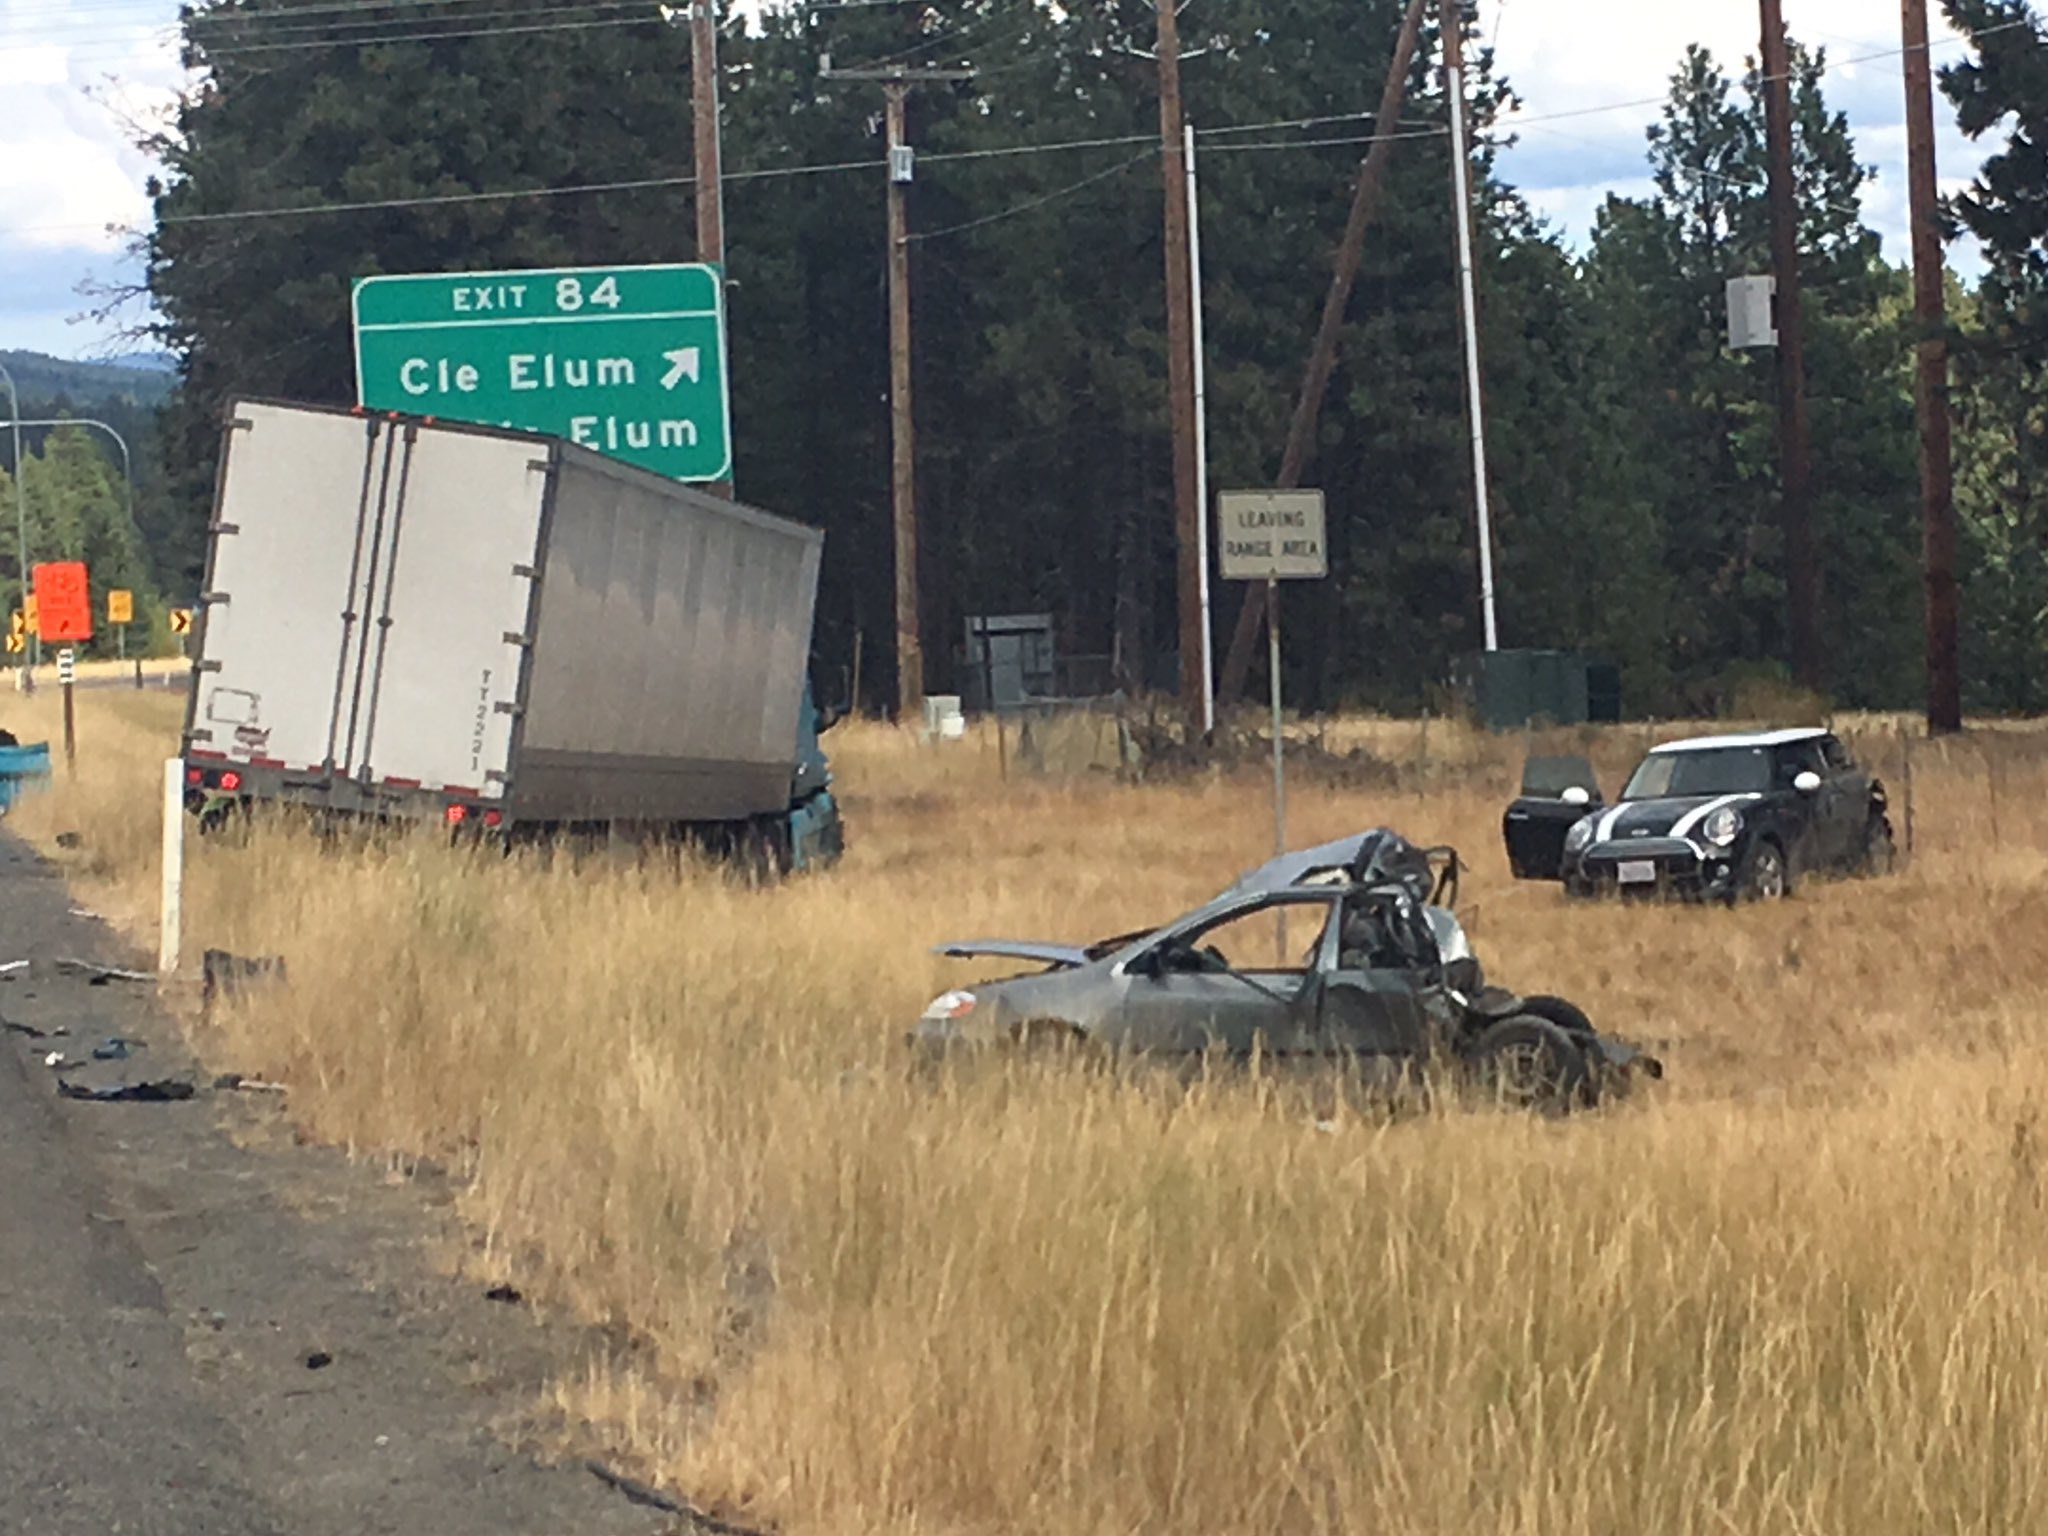 At least one person was killed in a multi-car crash involving a semi-truck on eastbound Interstate 90 near Cle Elum, according to the State Patrol. (Photo: WSP)